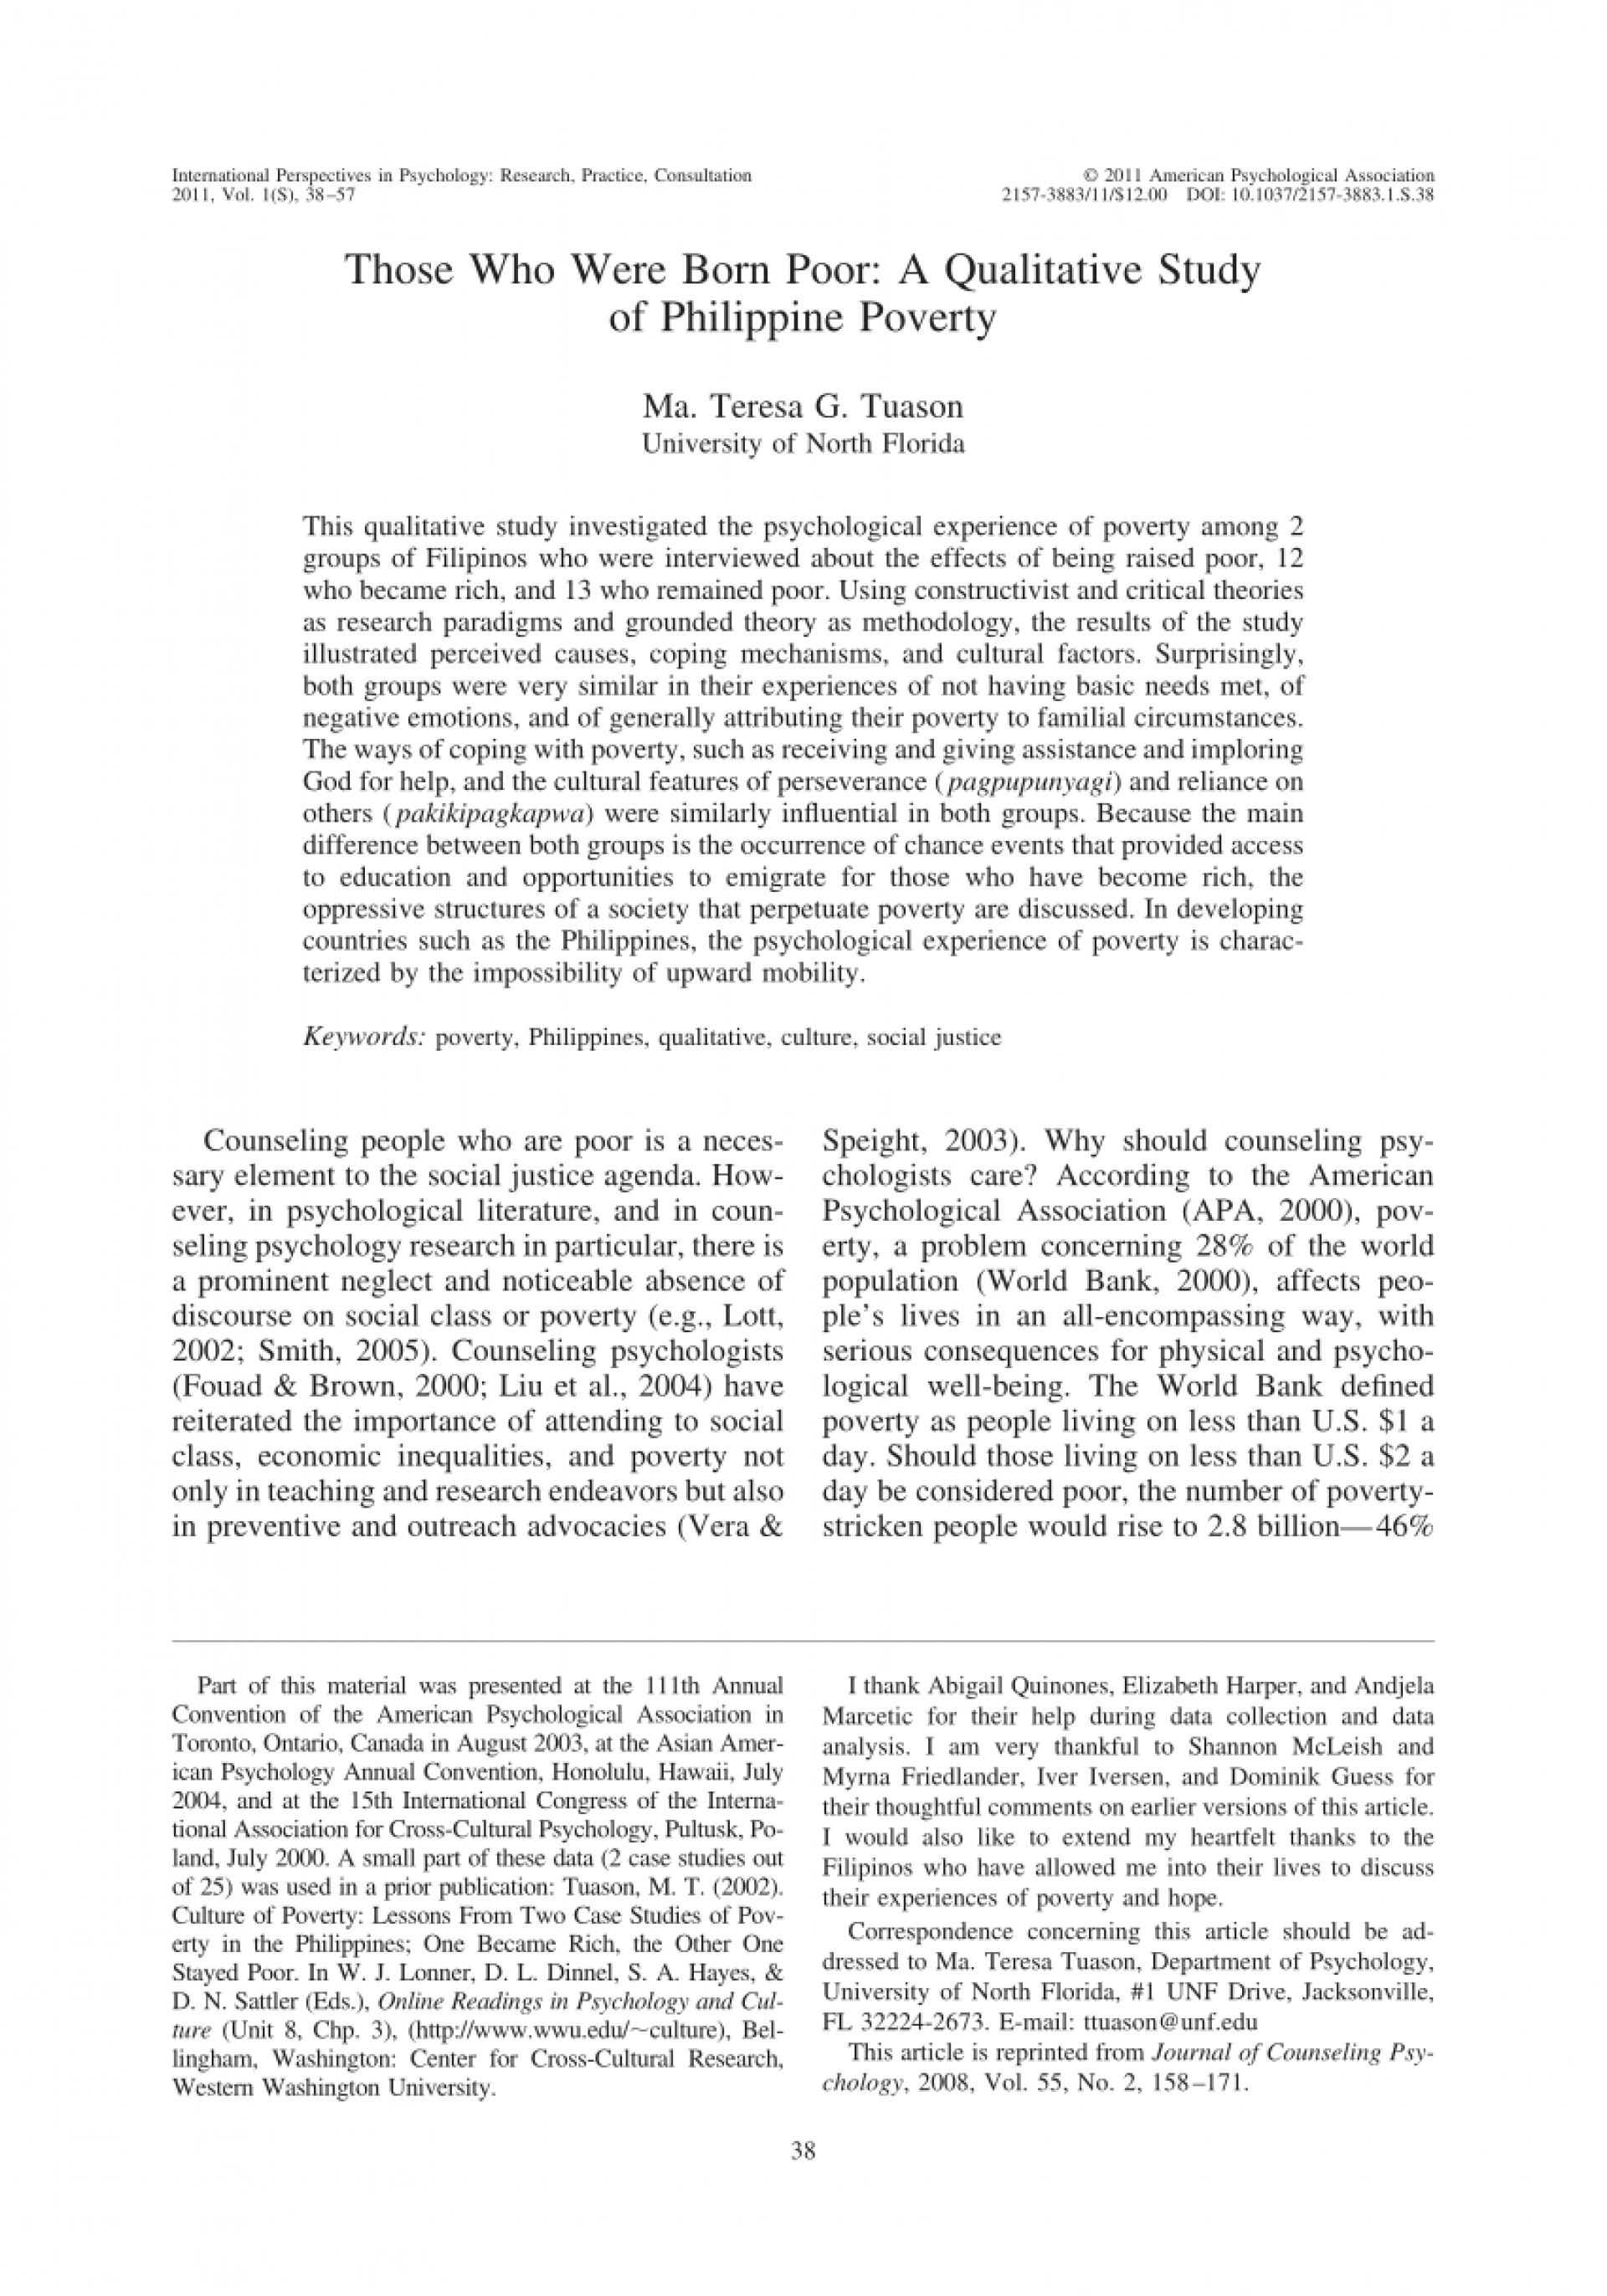 002 Poverty In The Philippines Research Paper Pdf Impressive 1920